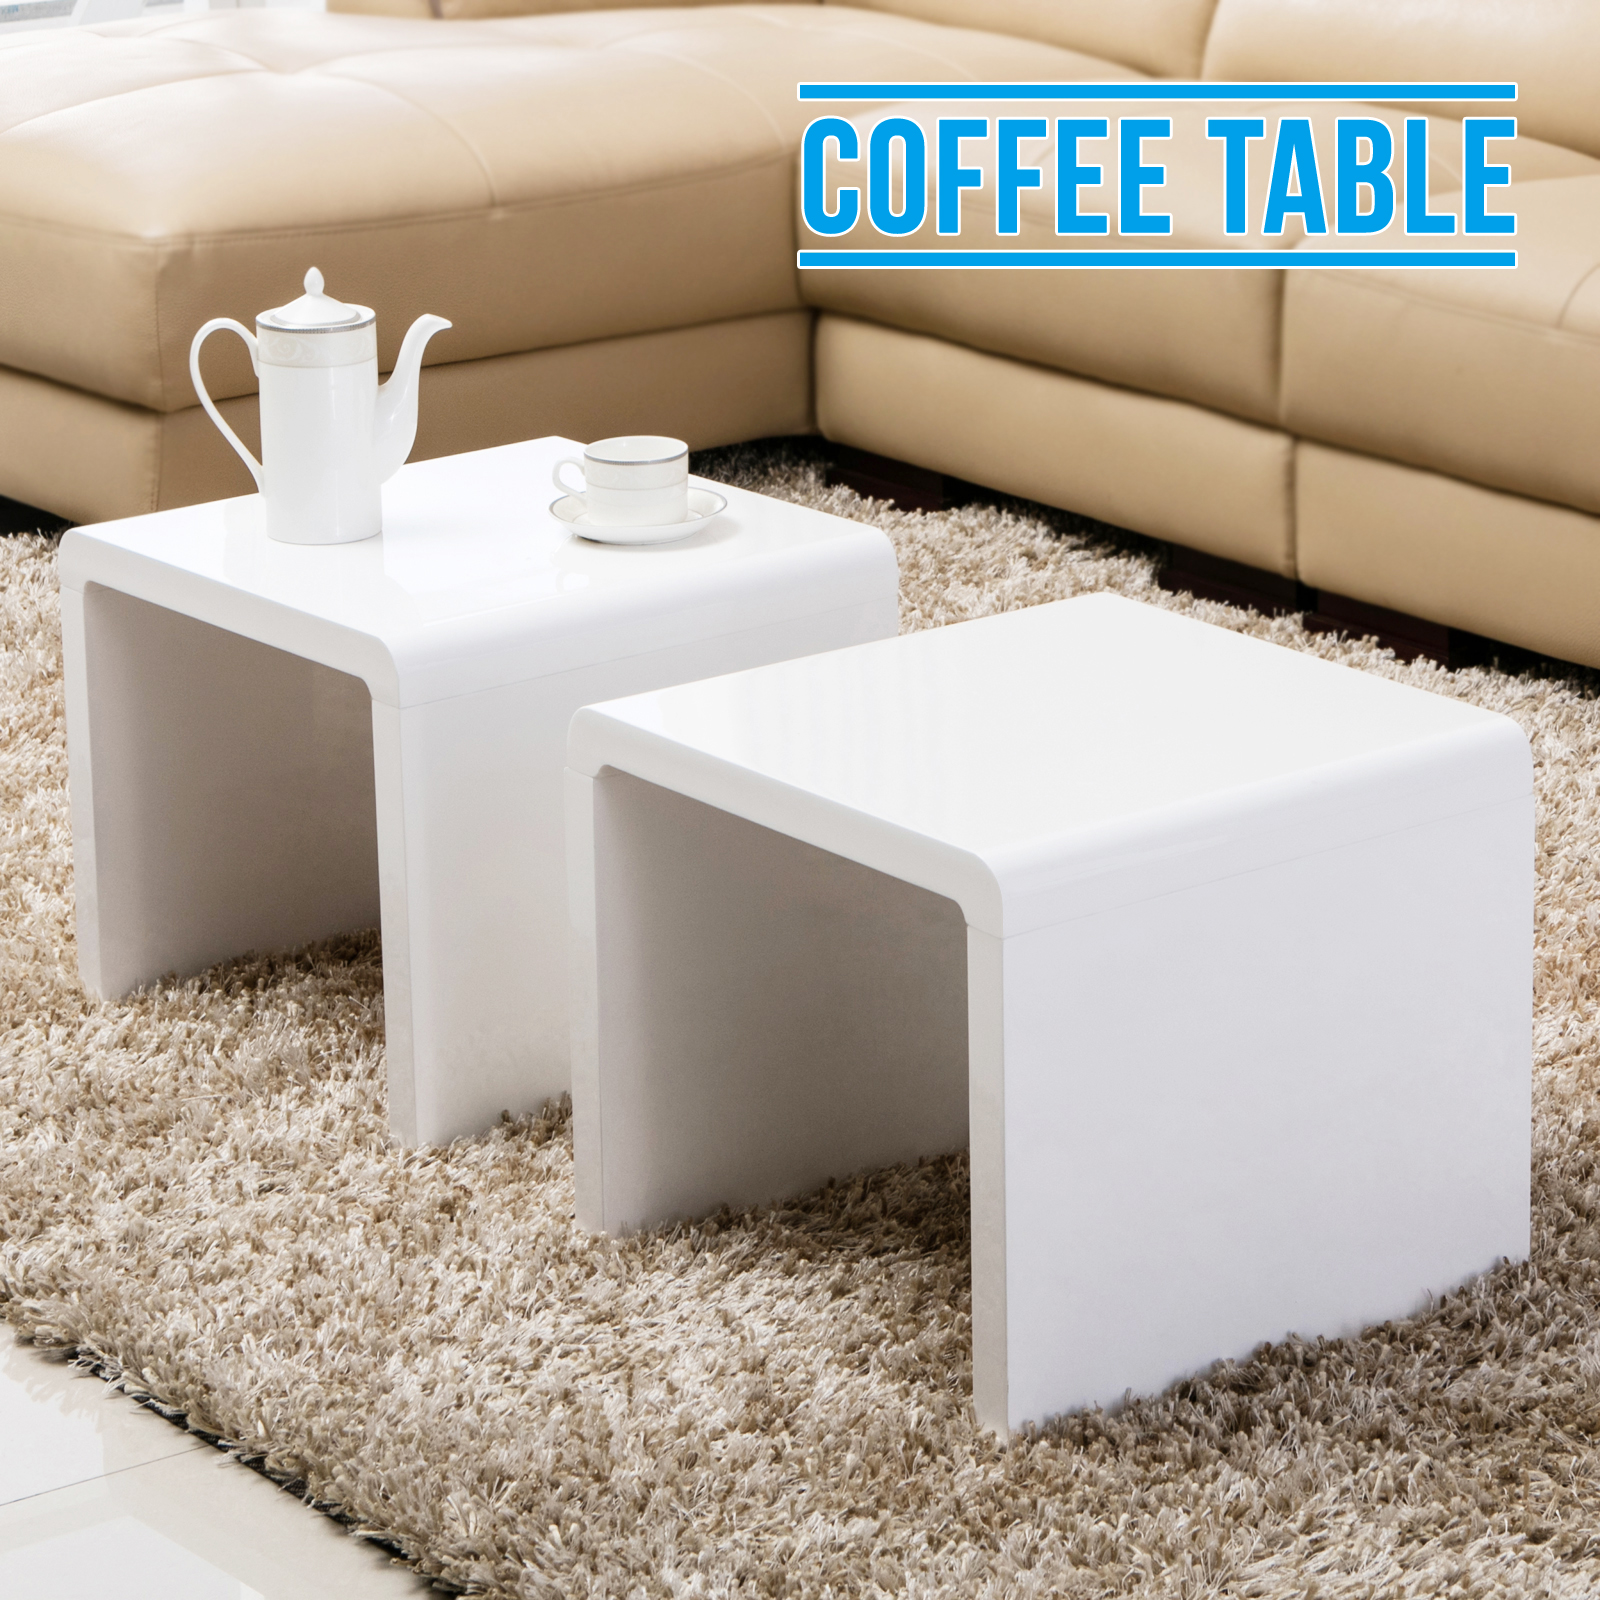 White High Gloss Side End Square 2 Seats Of Coffee Table: Design White High Gloss Coffee Table Side/End Table Set Of